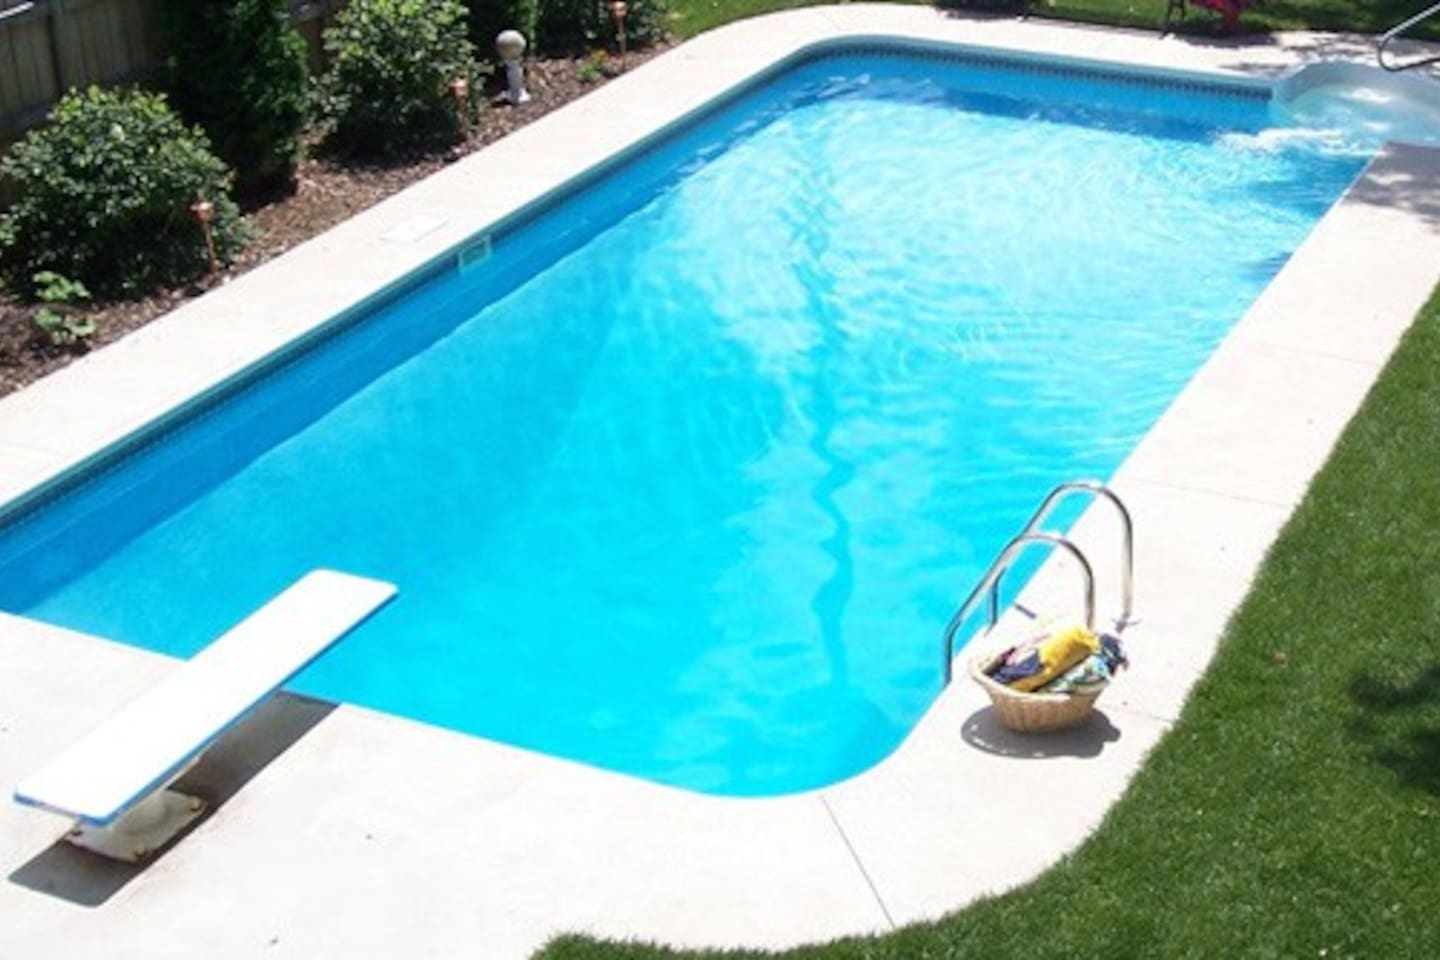 Refreshing pool available to all our guests **NO LIFEGUARD ON DUTY**